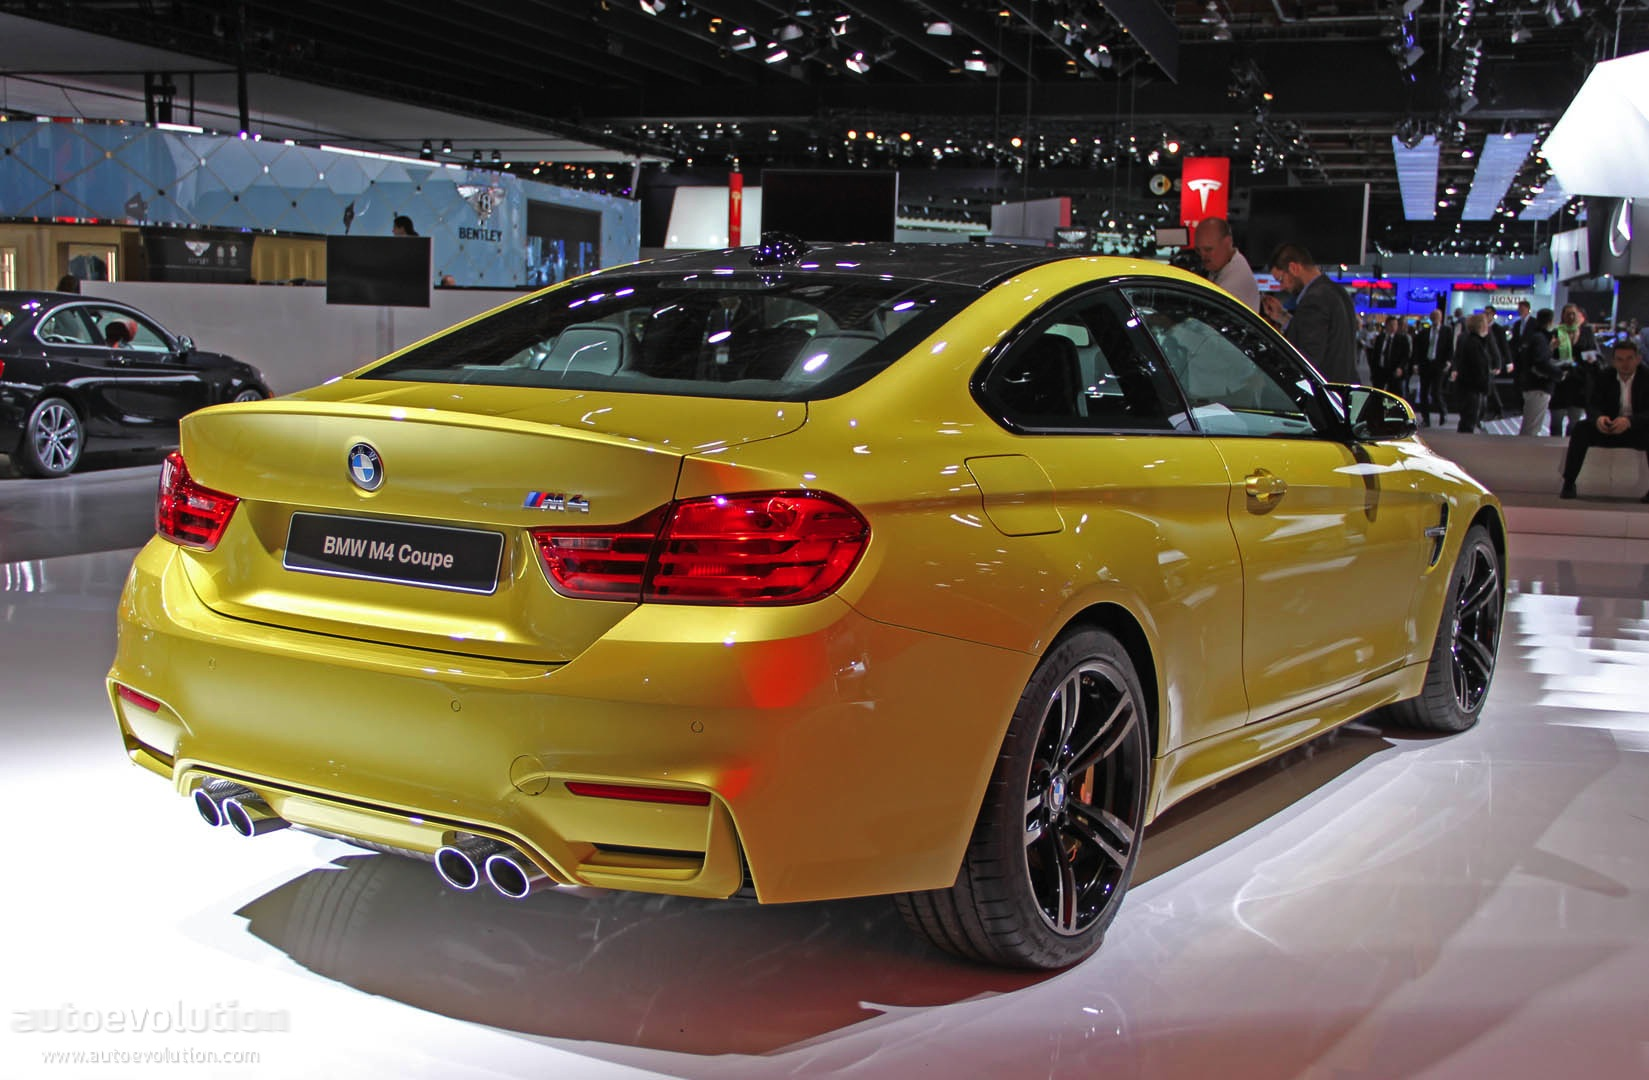 Bmw M4 Looks Proud Of Its New 3 Liter Twin Turbo Engine